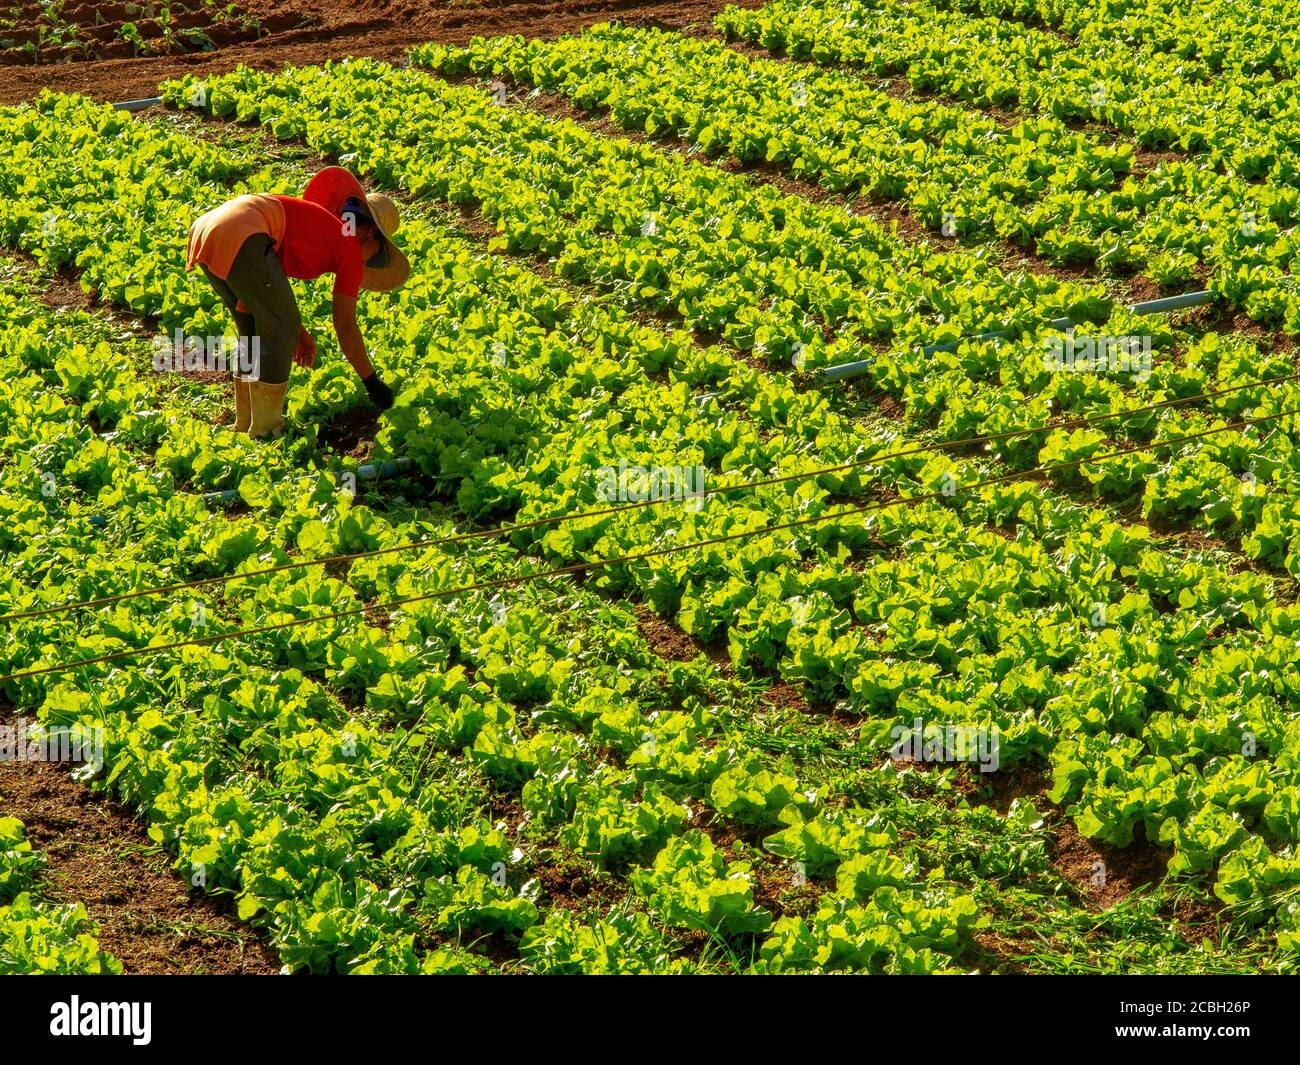 Brazilian Farm High Resolution Stock Photography And Images Alamy